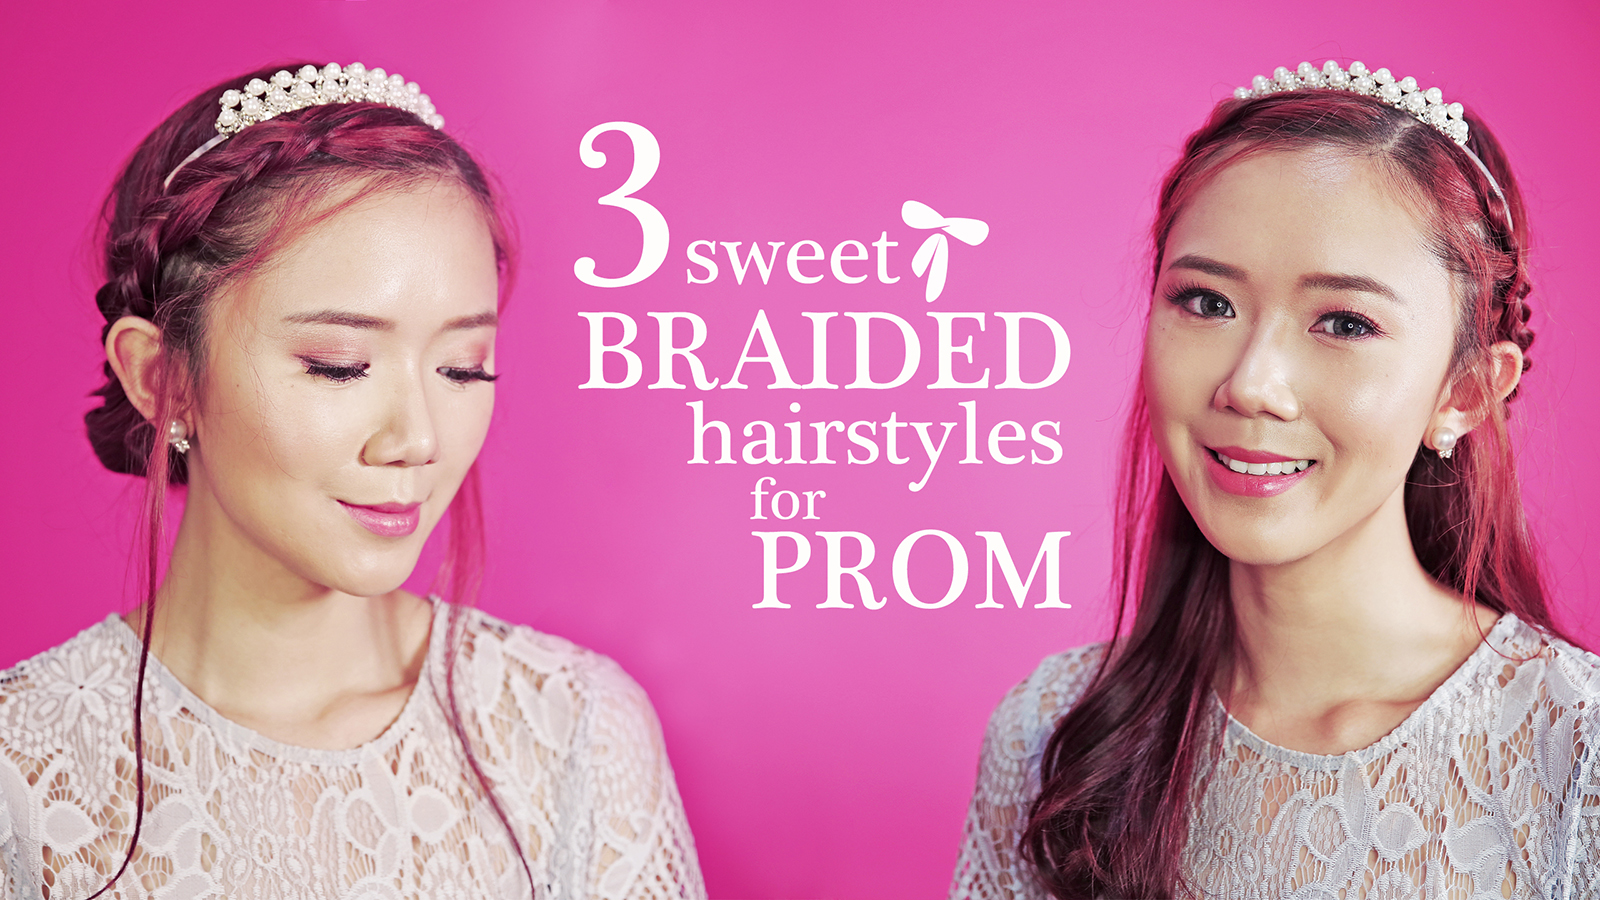 Braided Hairstyle For Prom - www.itscamilleco.com